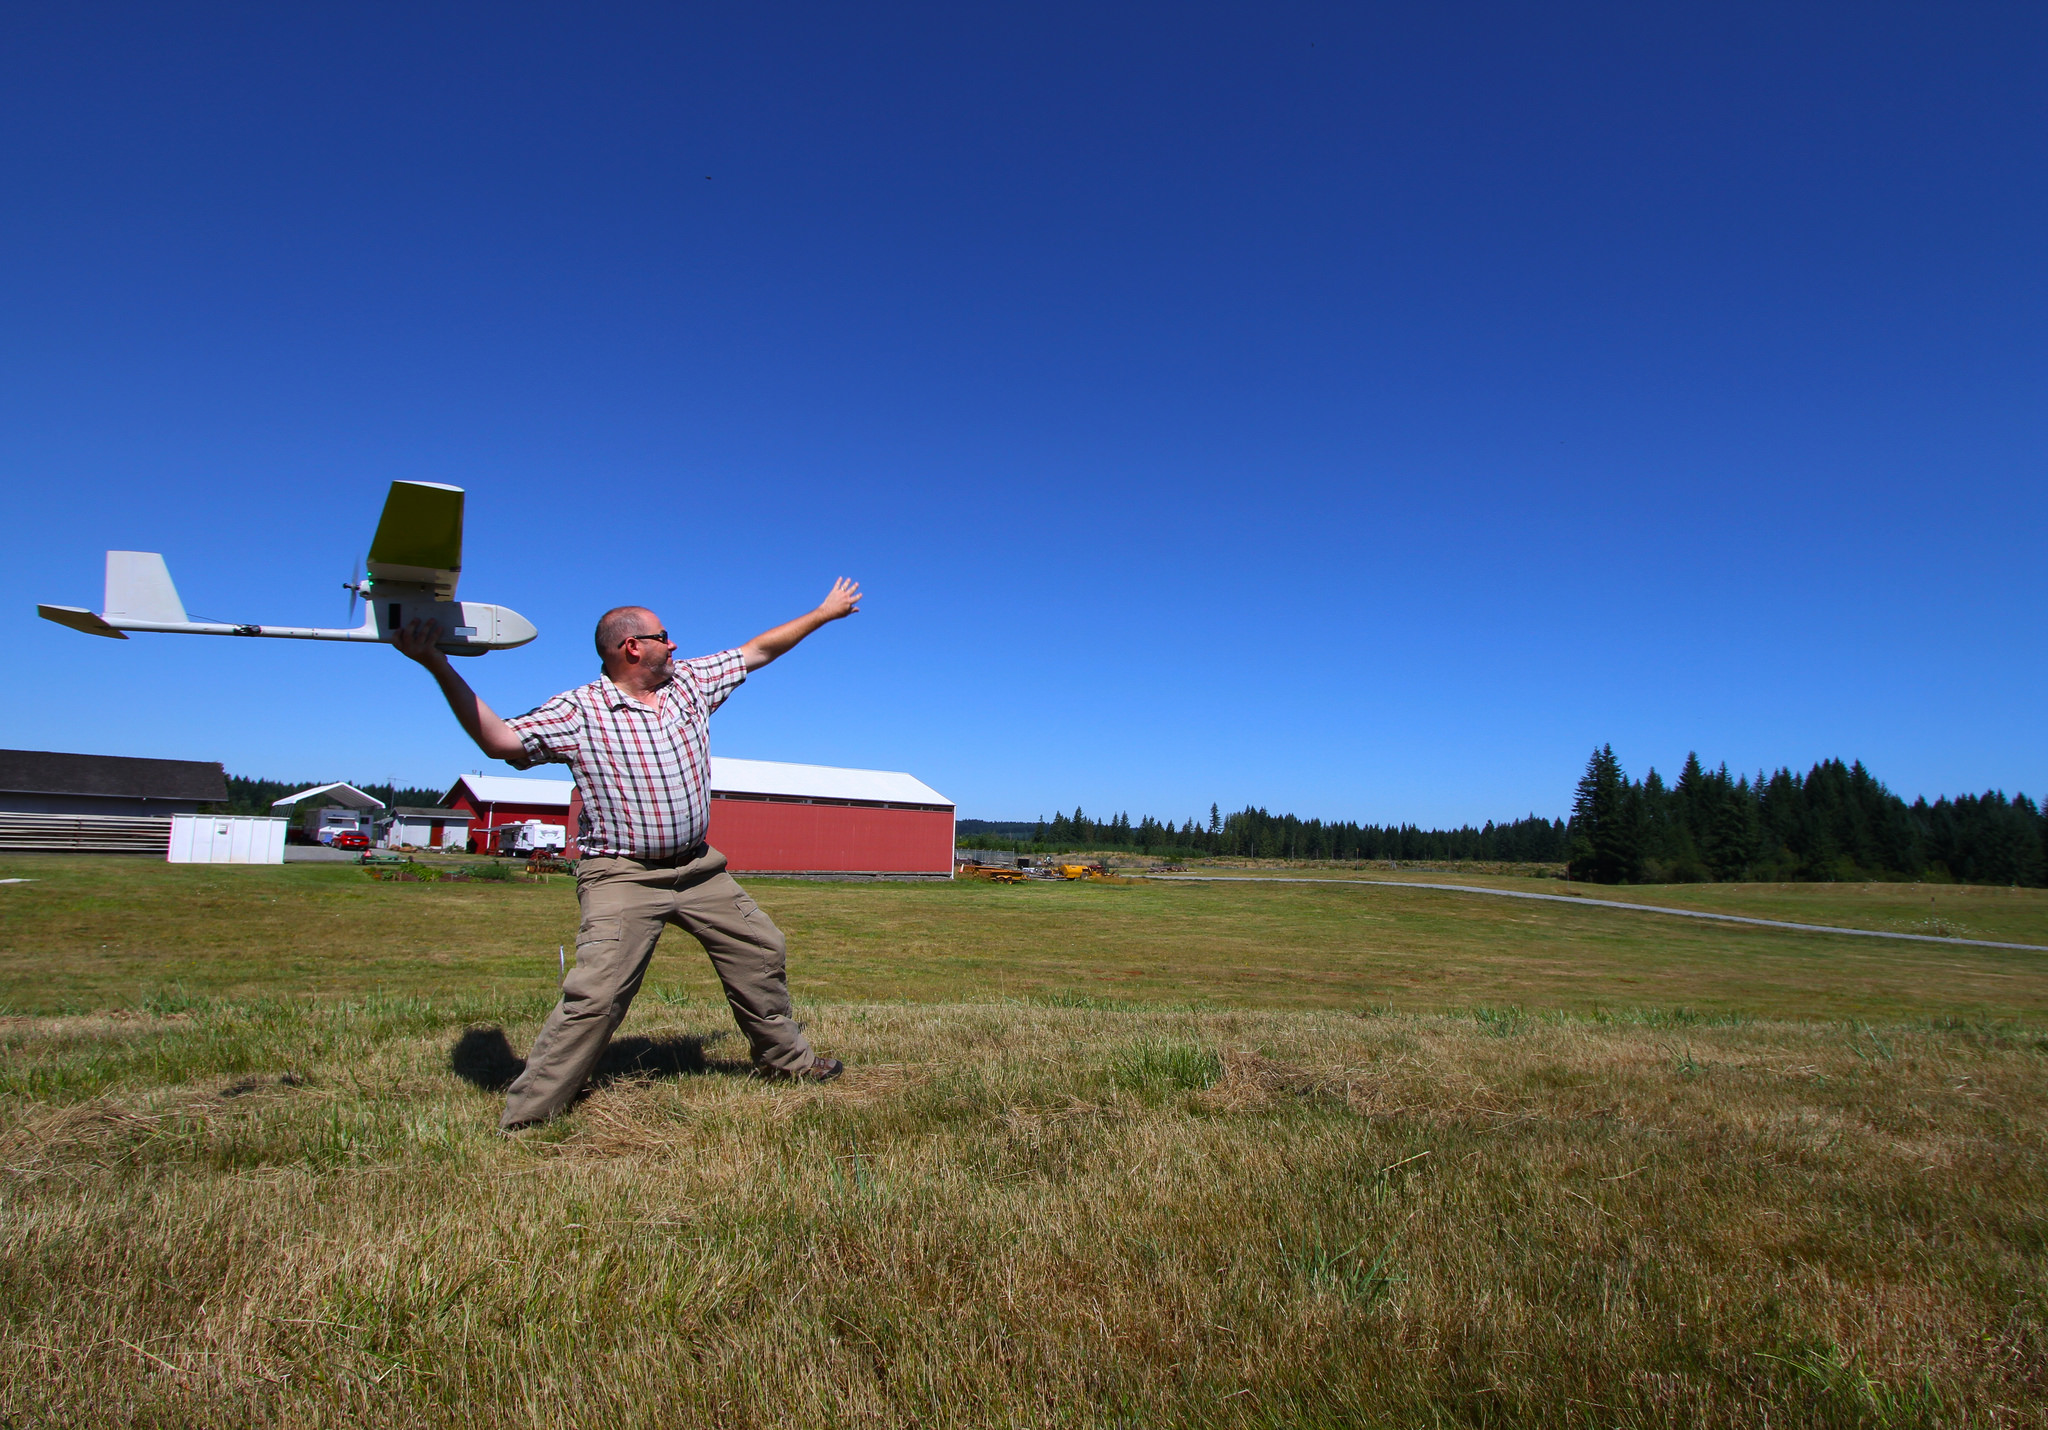 USGS Team Flies Drones for Oregon BLM Forestry Research, BLM July 29, 2014